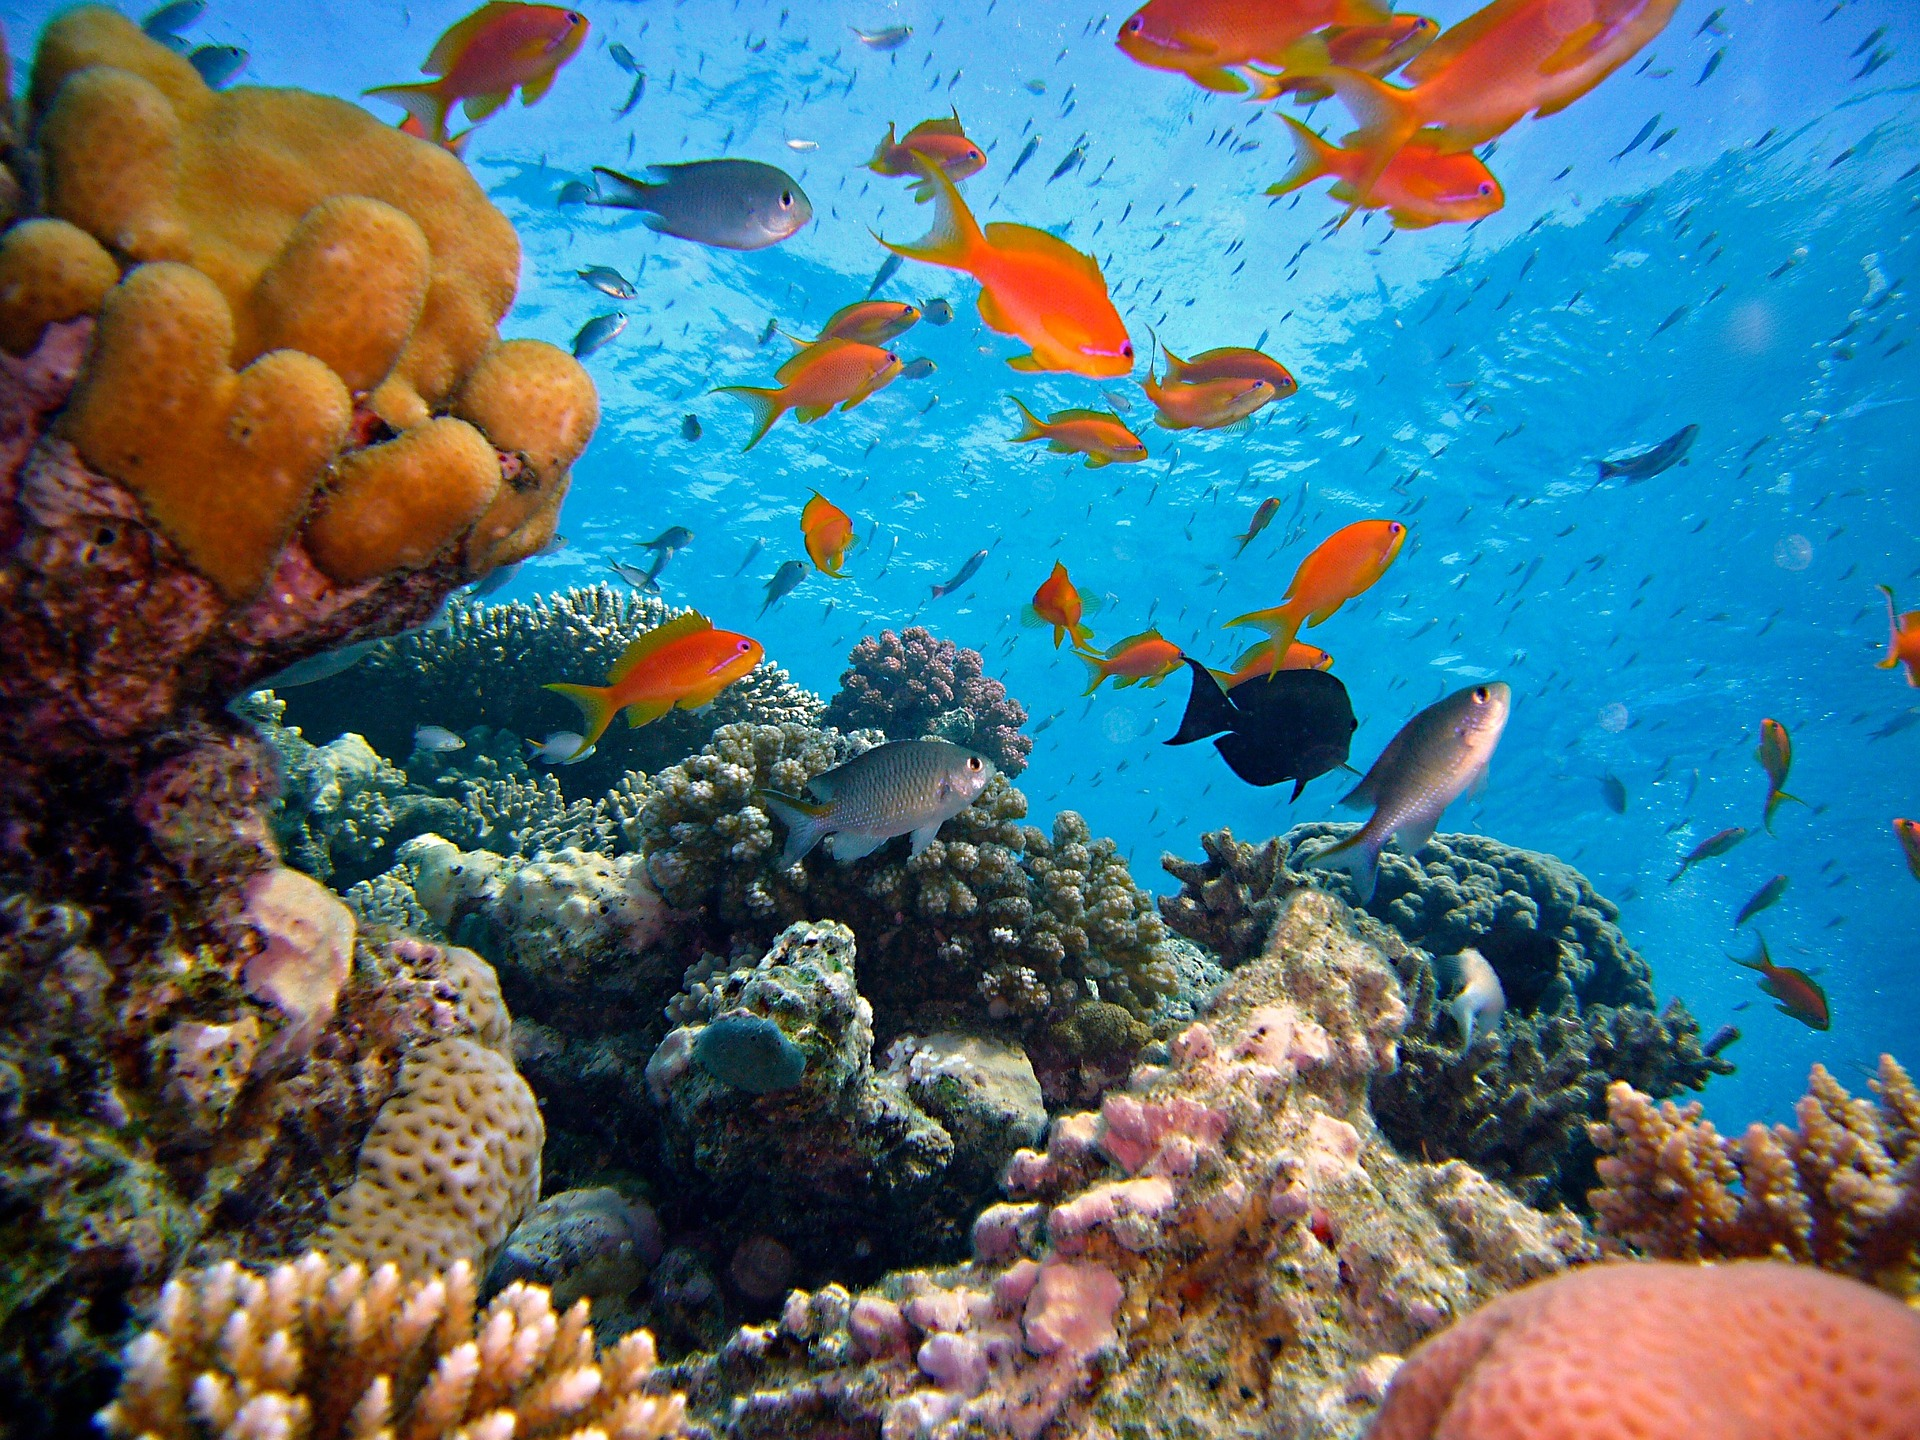 coral reef with coral species and several species of fish swimming above